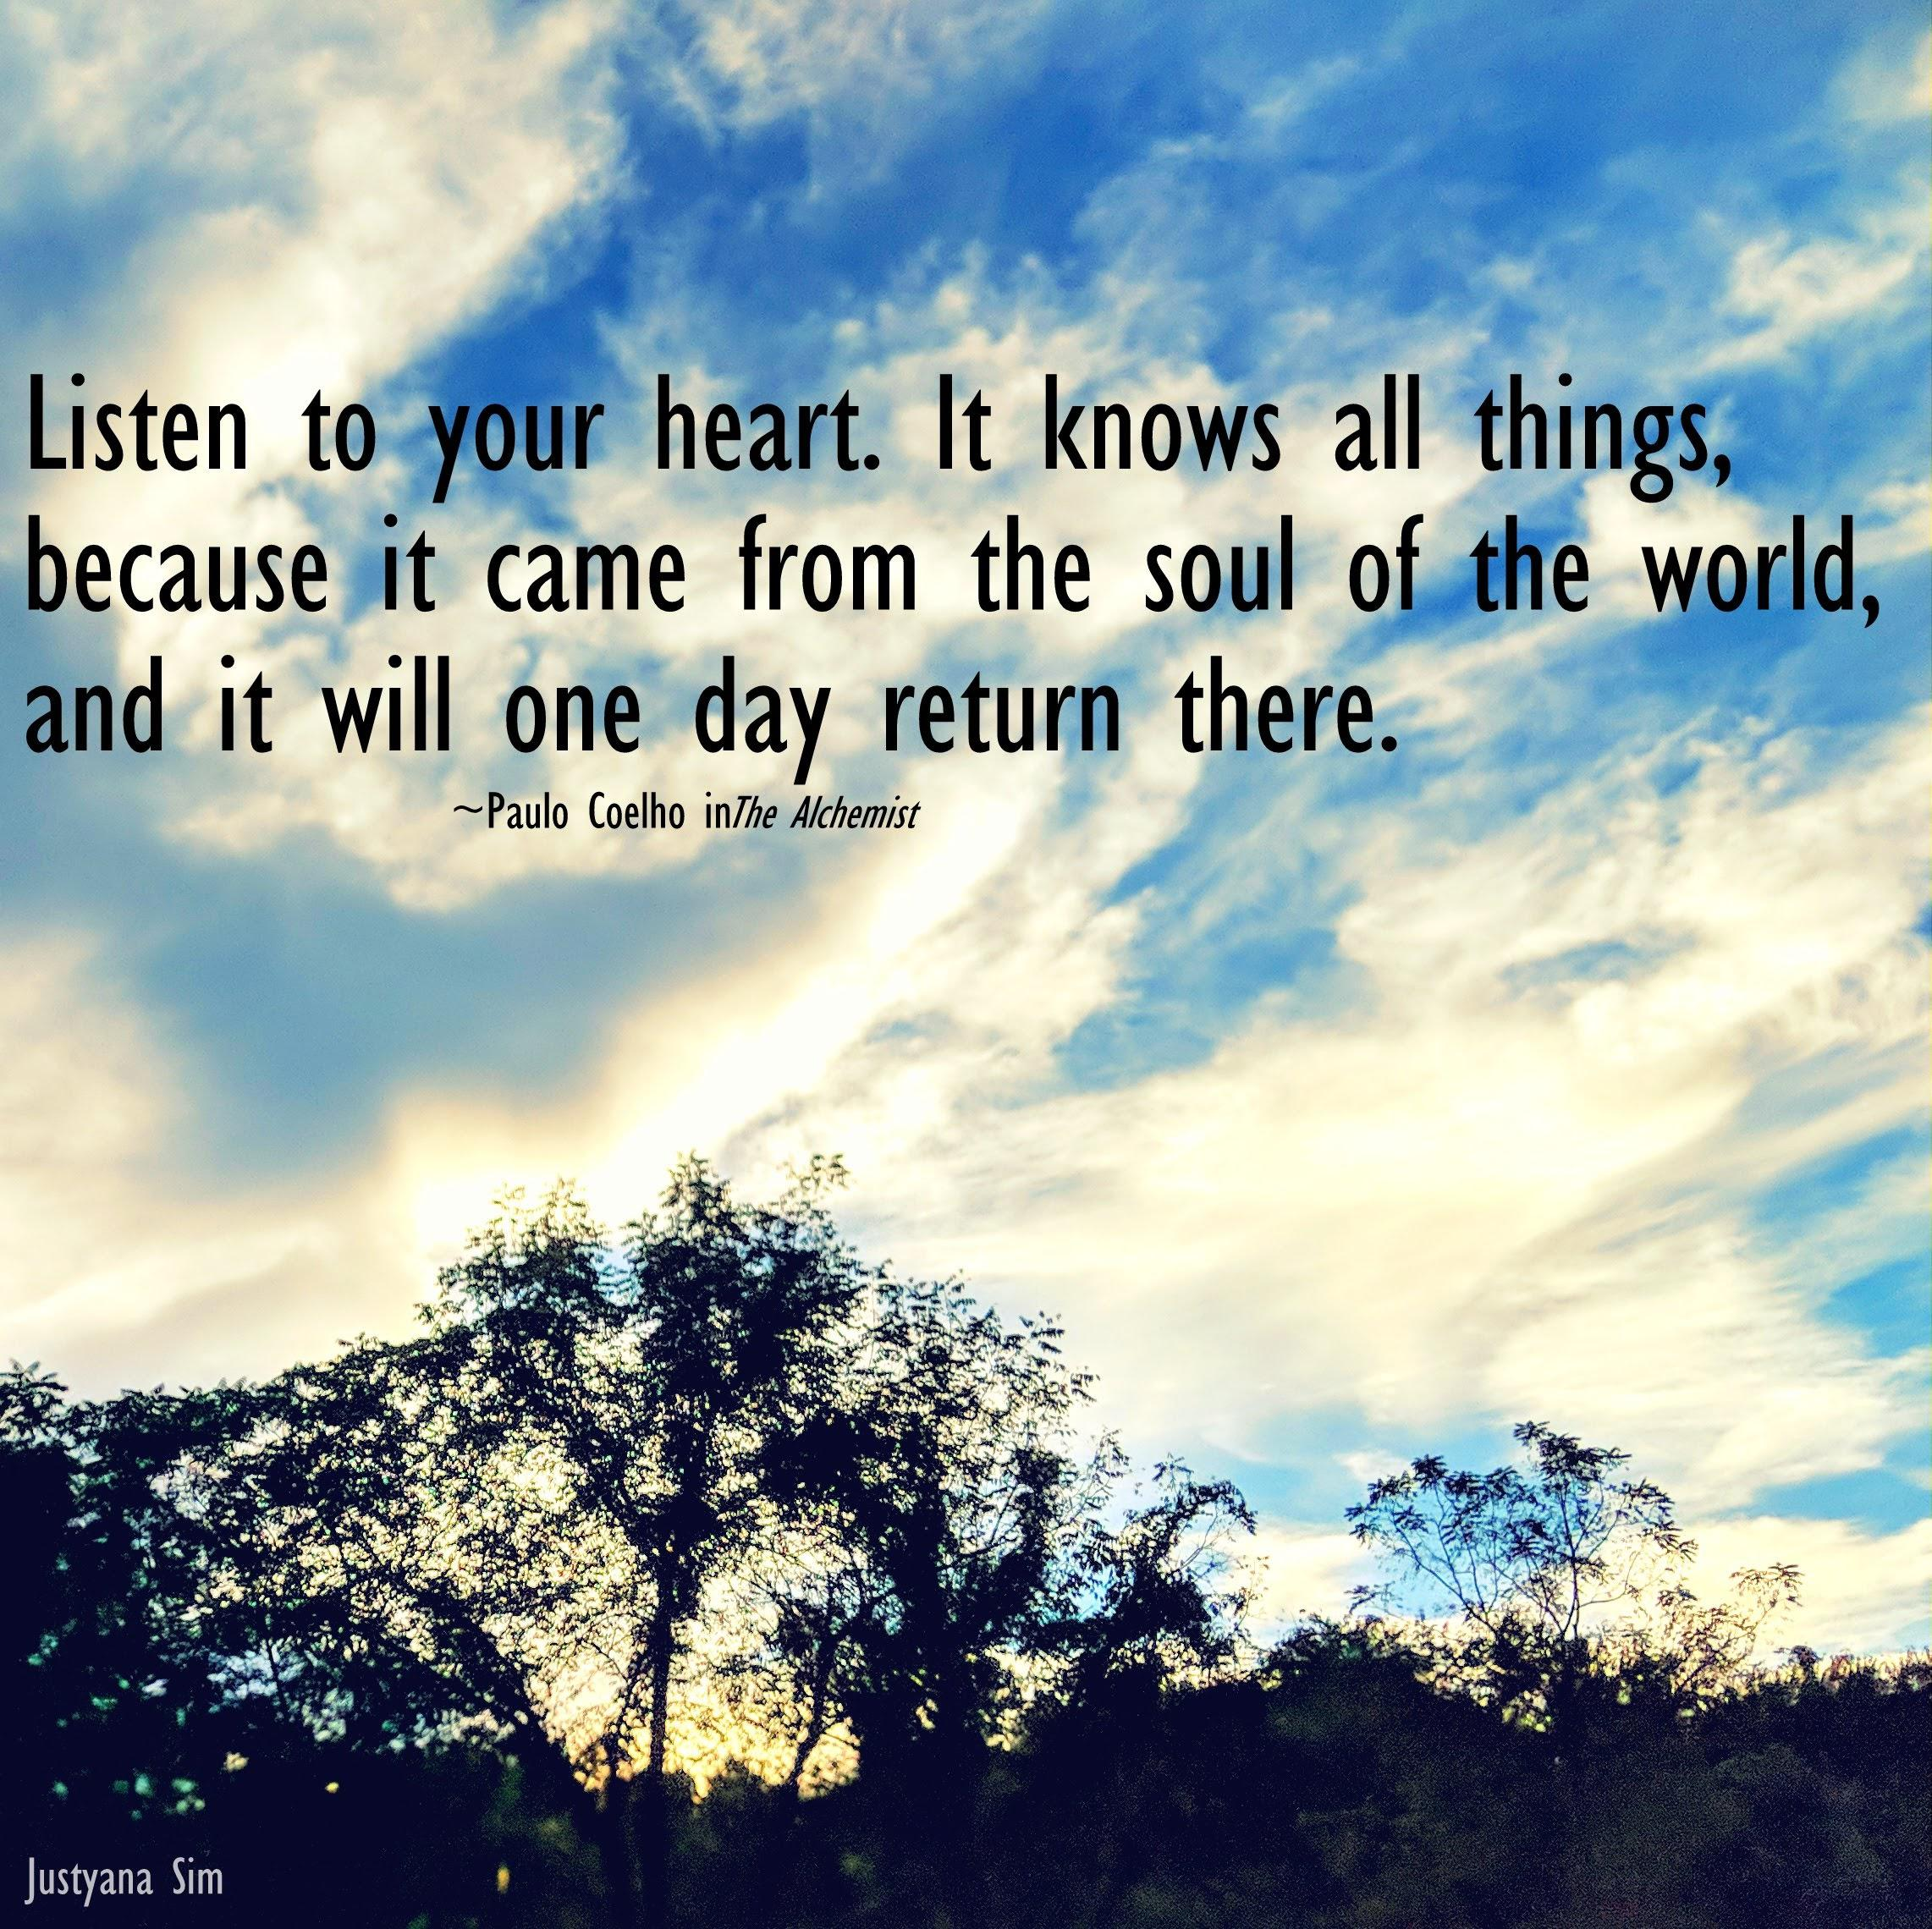 Listen to your heart, by Paul Coelho [2283 x 2280]